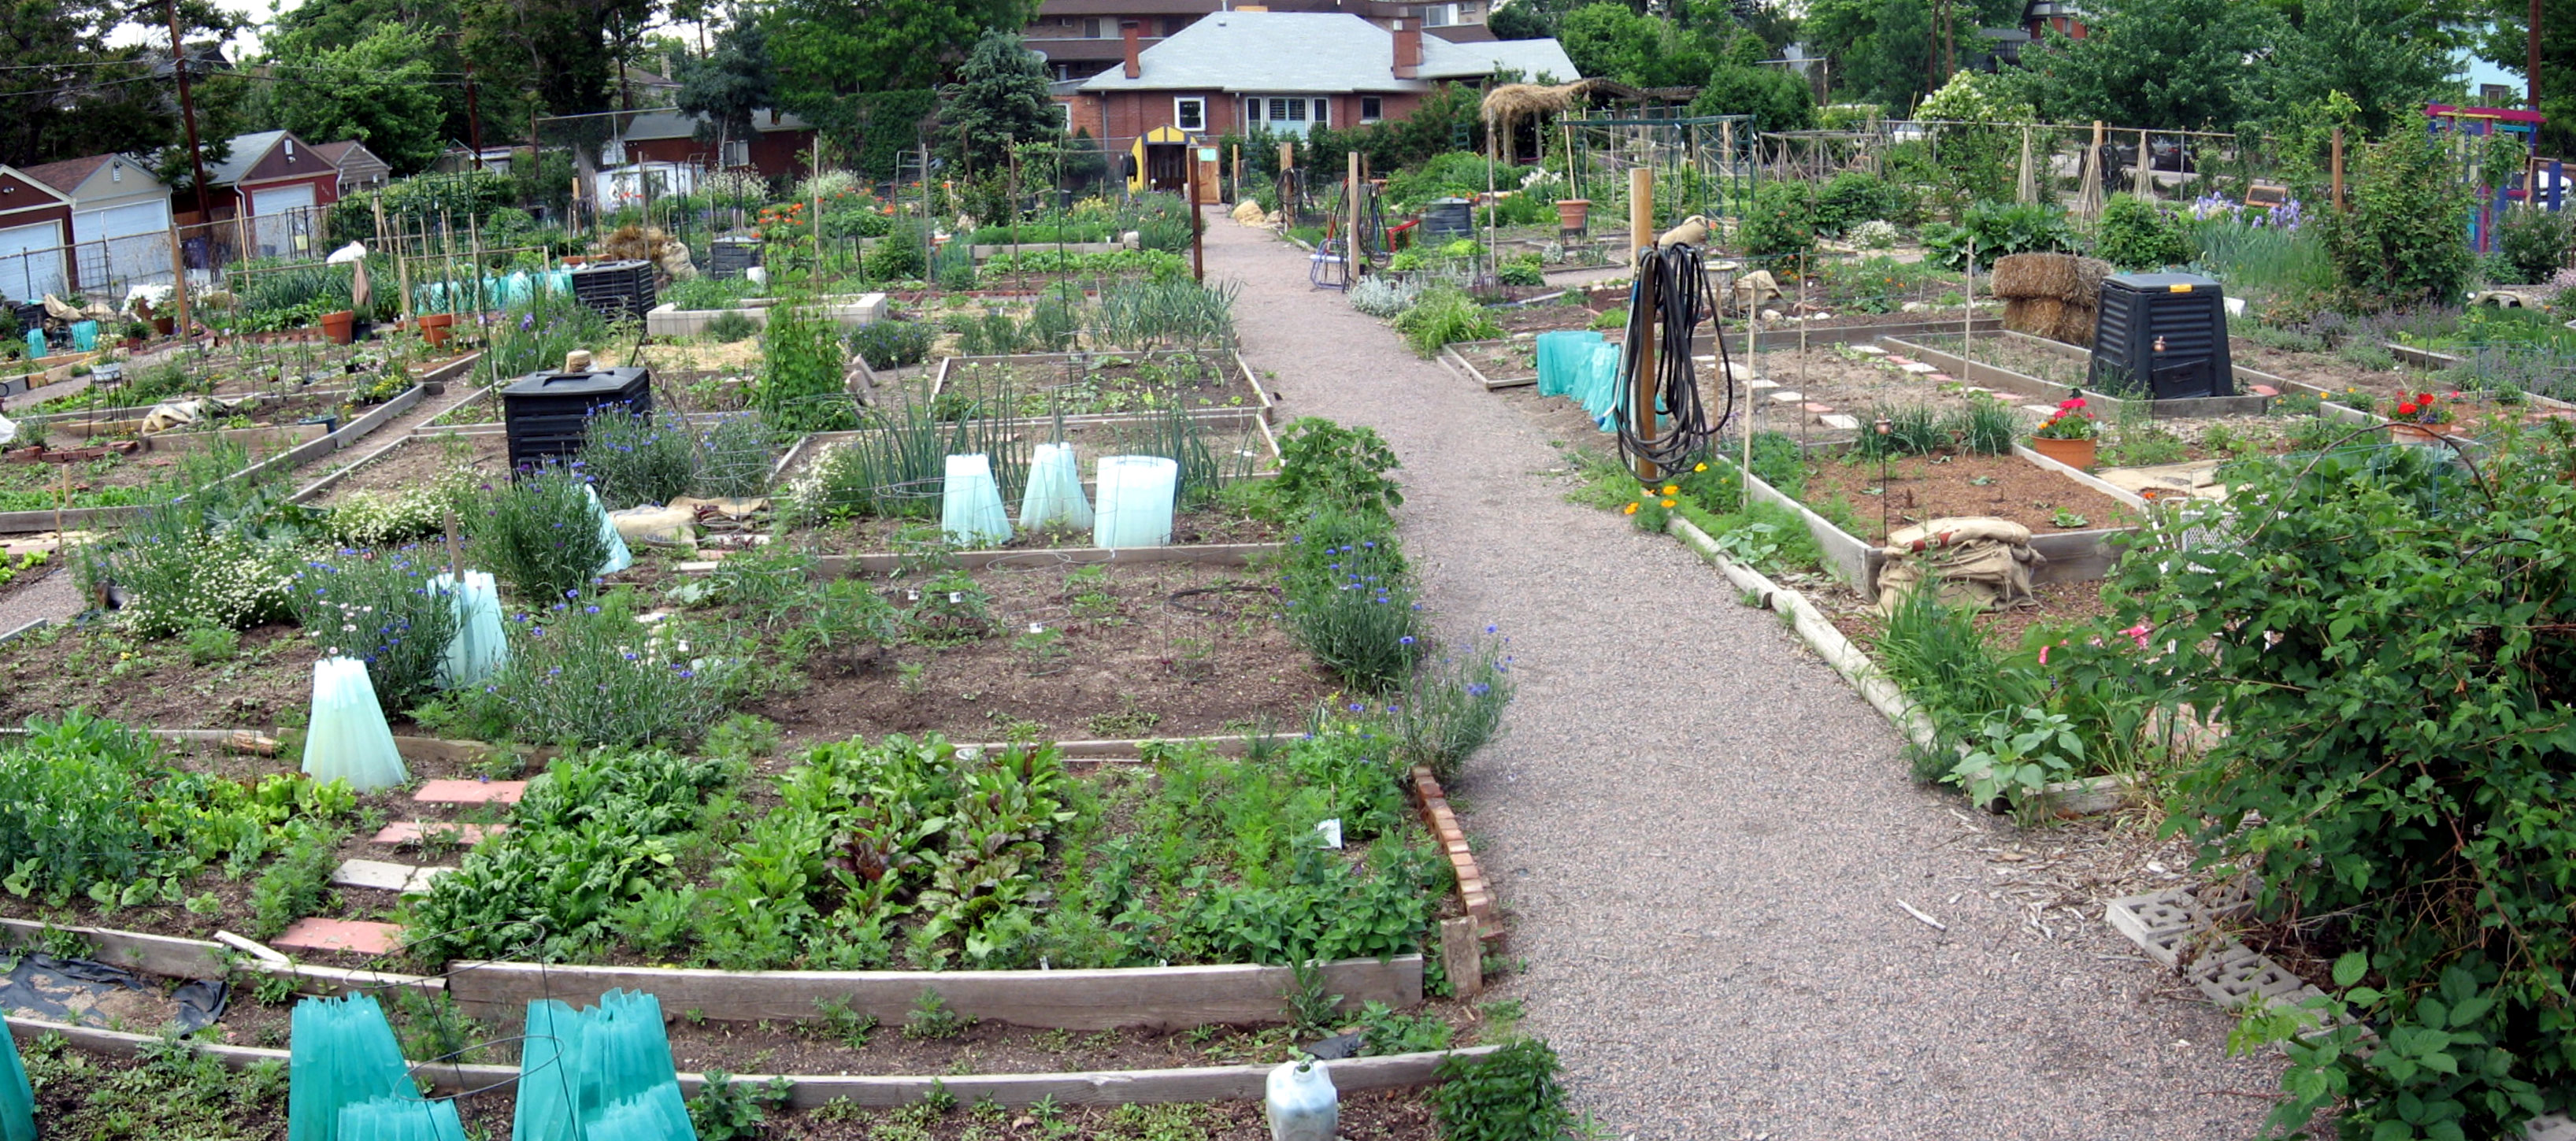 west washington park community garden - Urban Garden